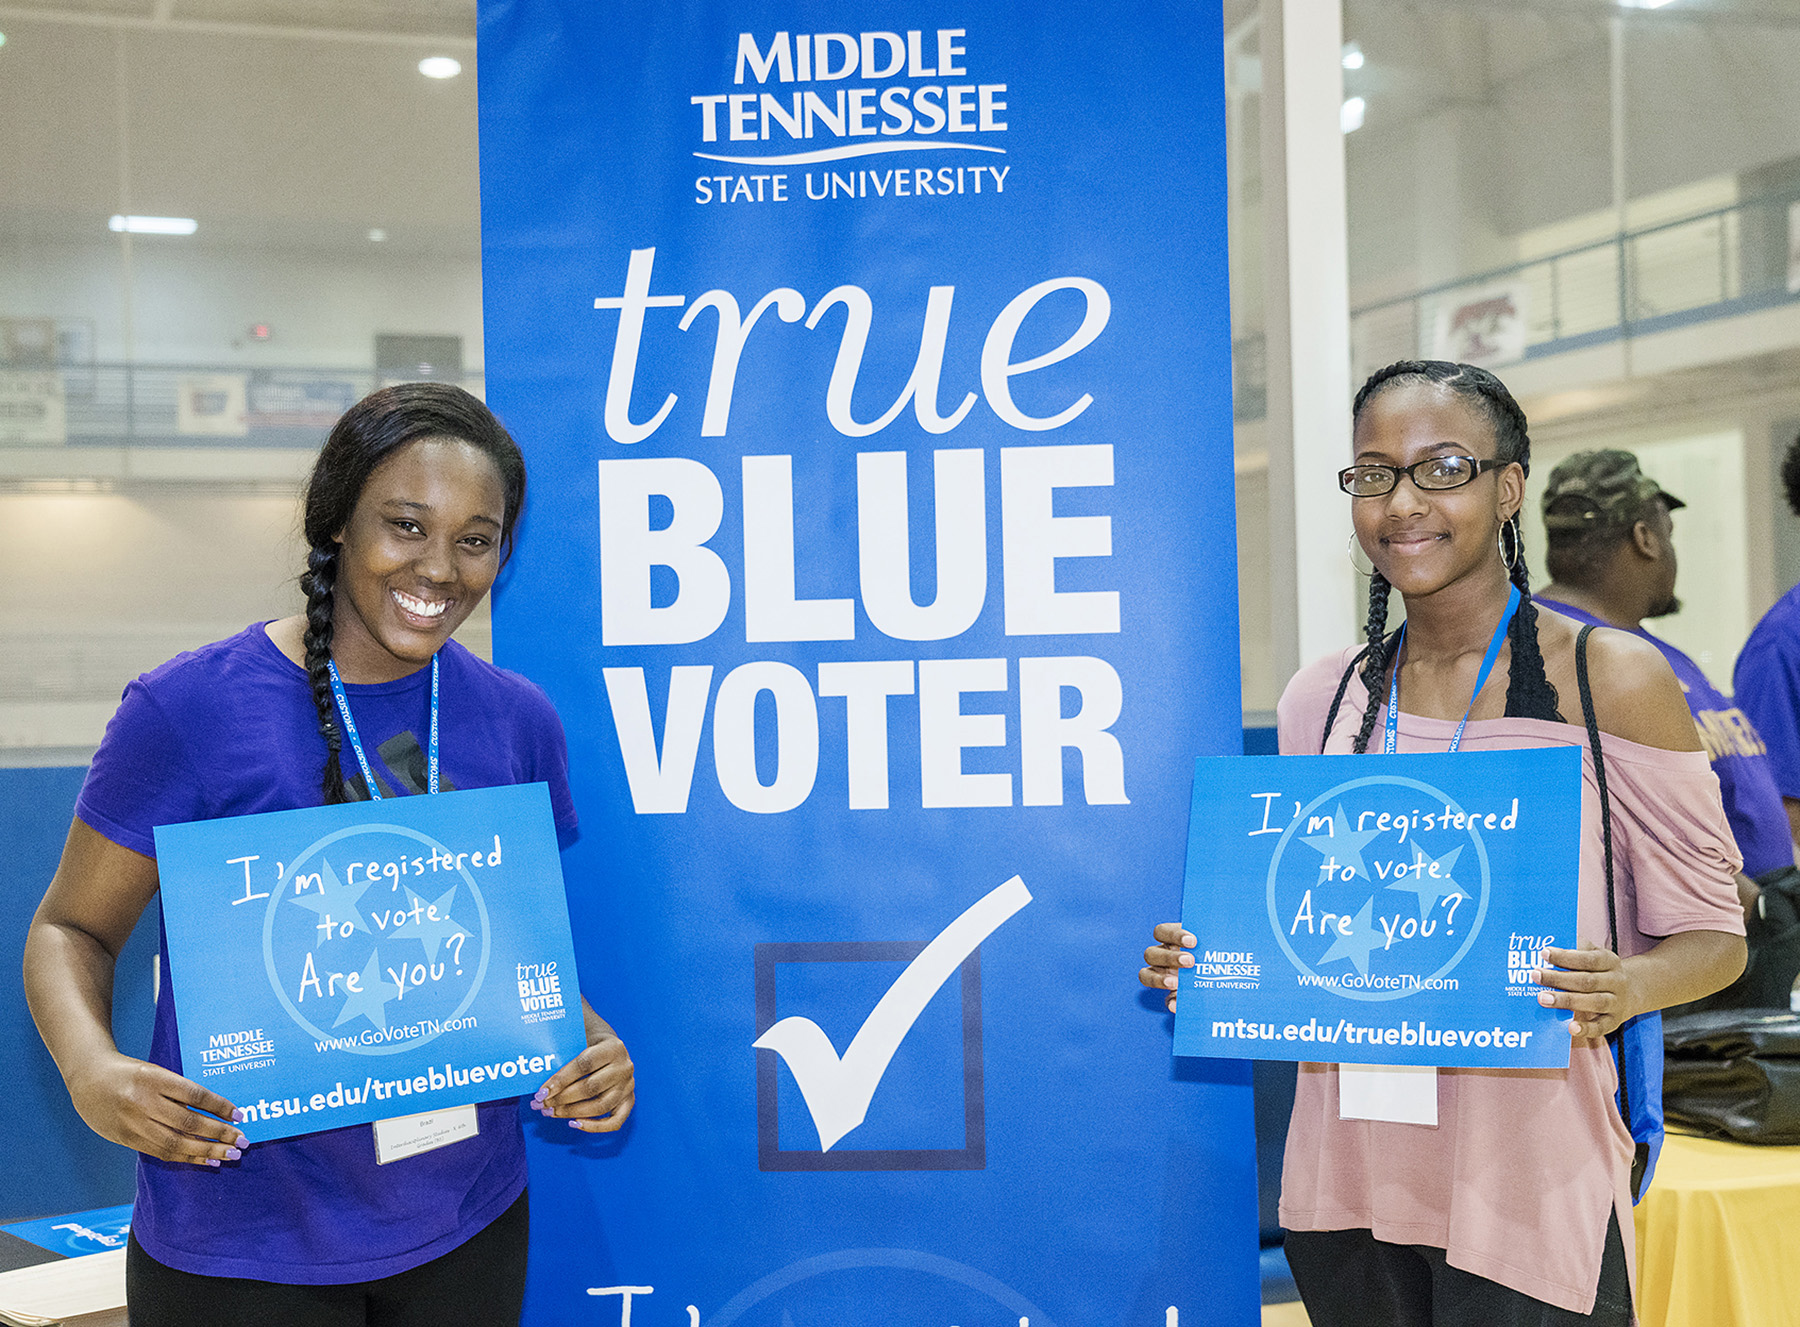 MTSU receives two national recognitions for student voter efforts